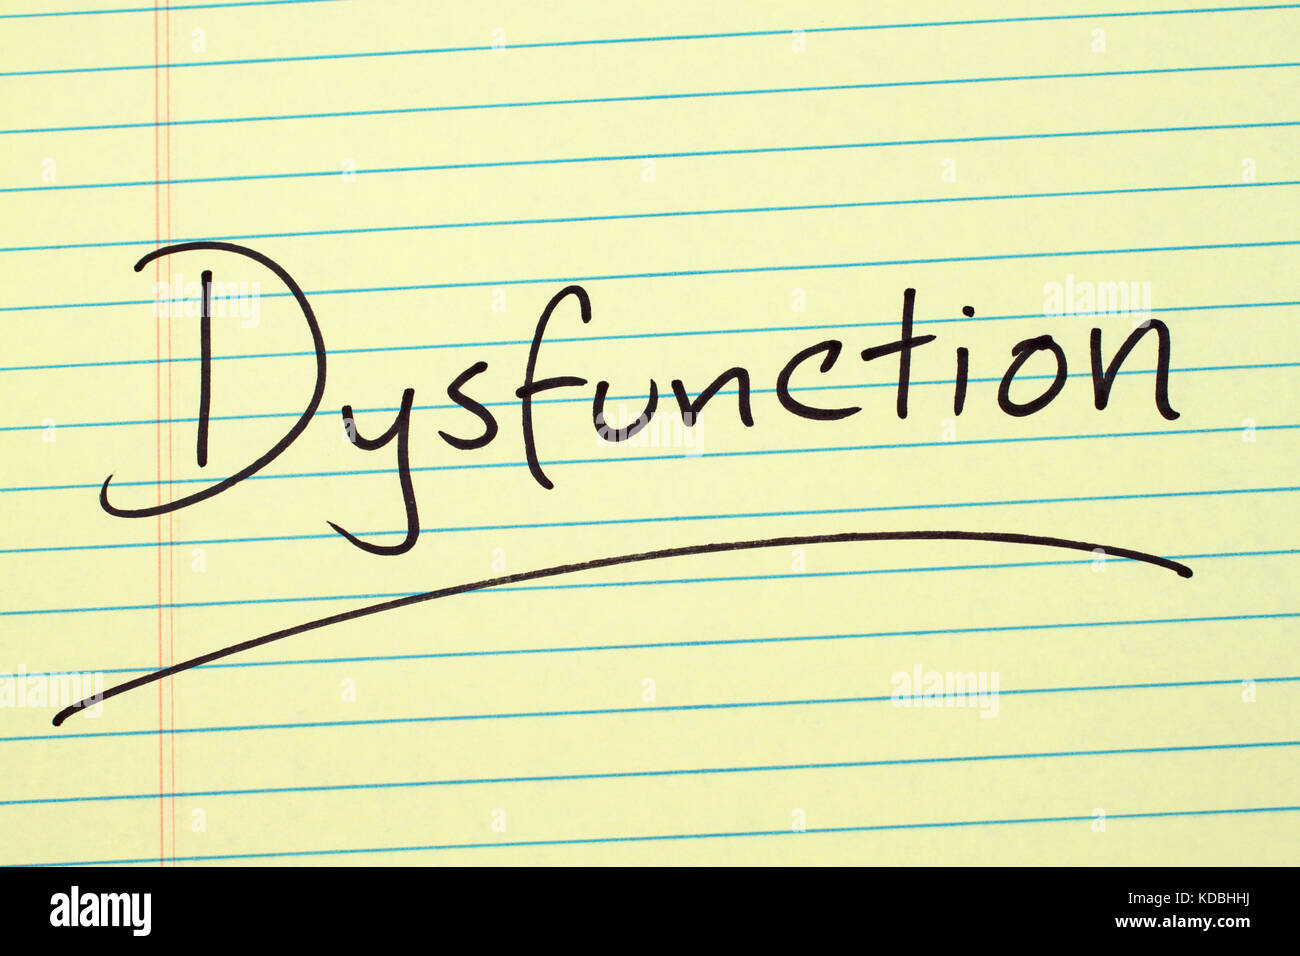 The word 'Dysfunction' underlined on a yellow legal pad - Stock Image